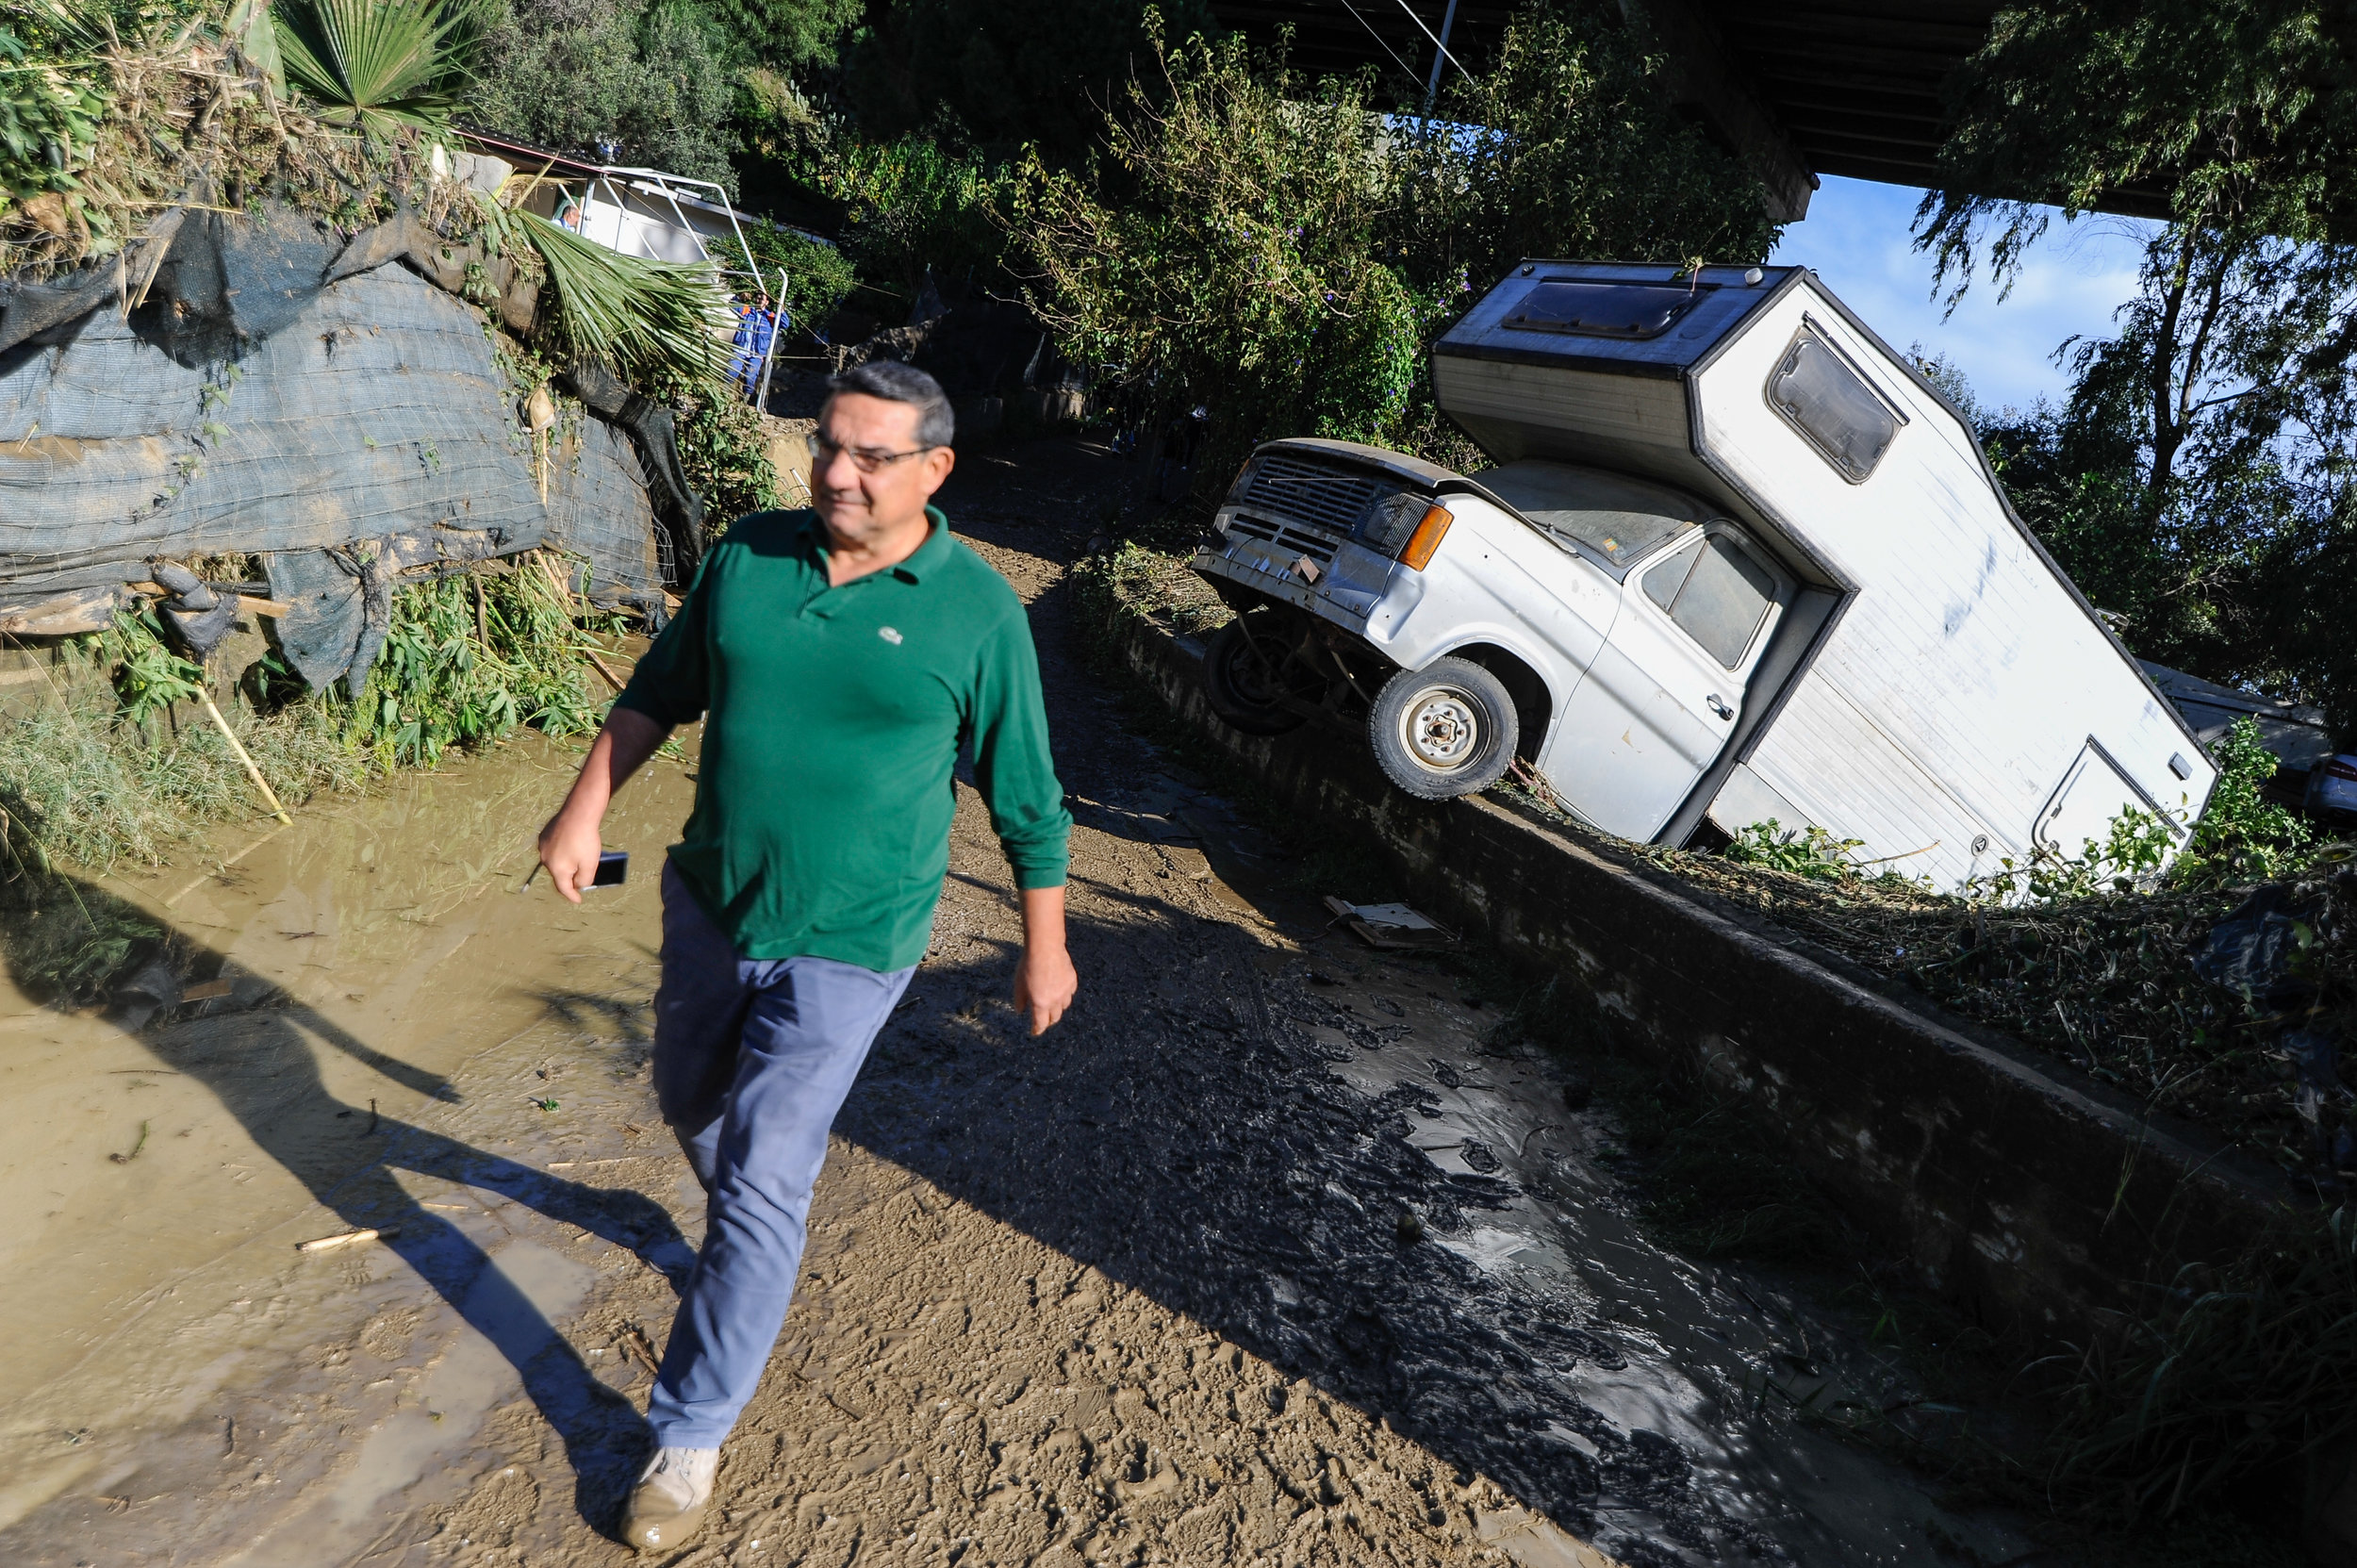 A man walks past a damaged motorhome after the river Milicia flooded causing the death of 9 people in Casteldaccia near Palermo, Italy, November 4, 2018.